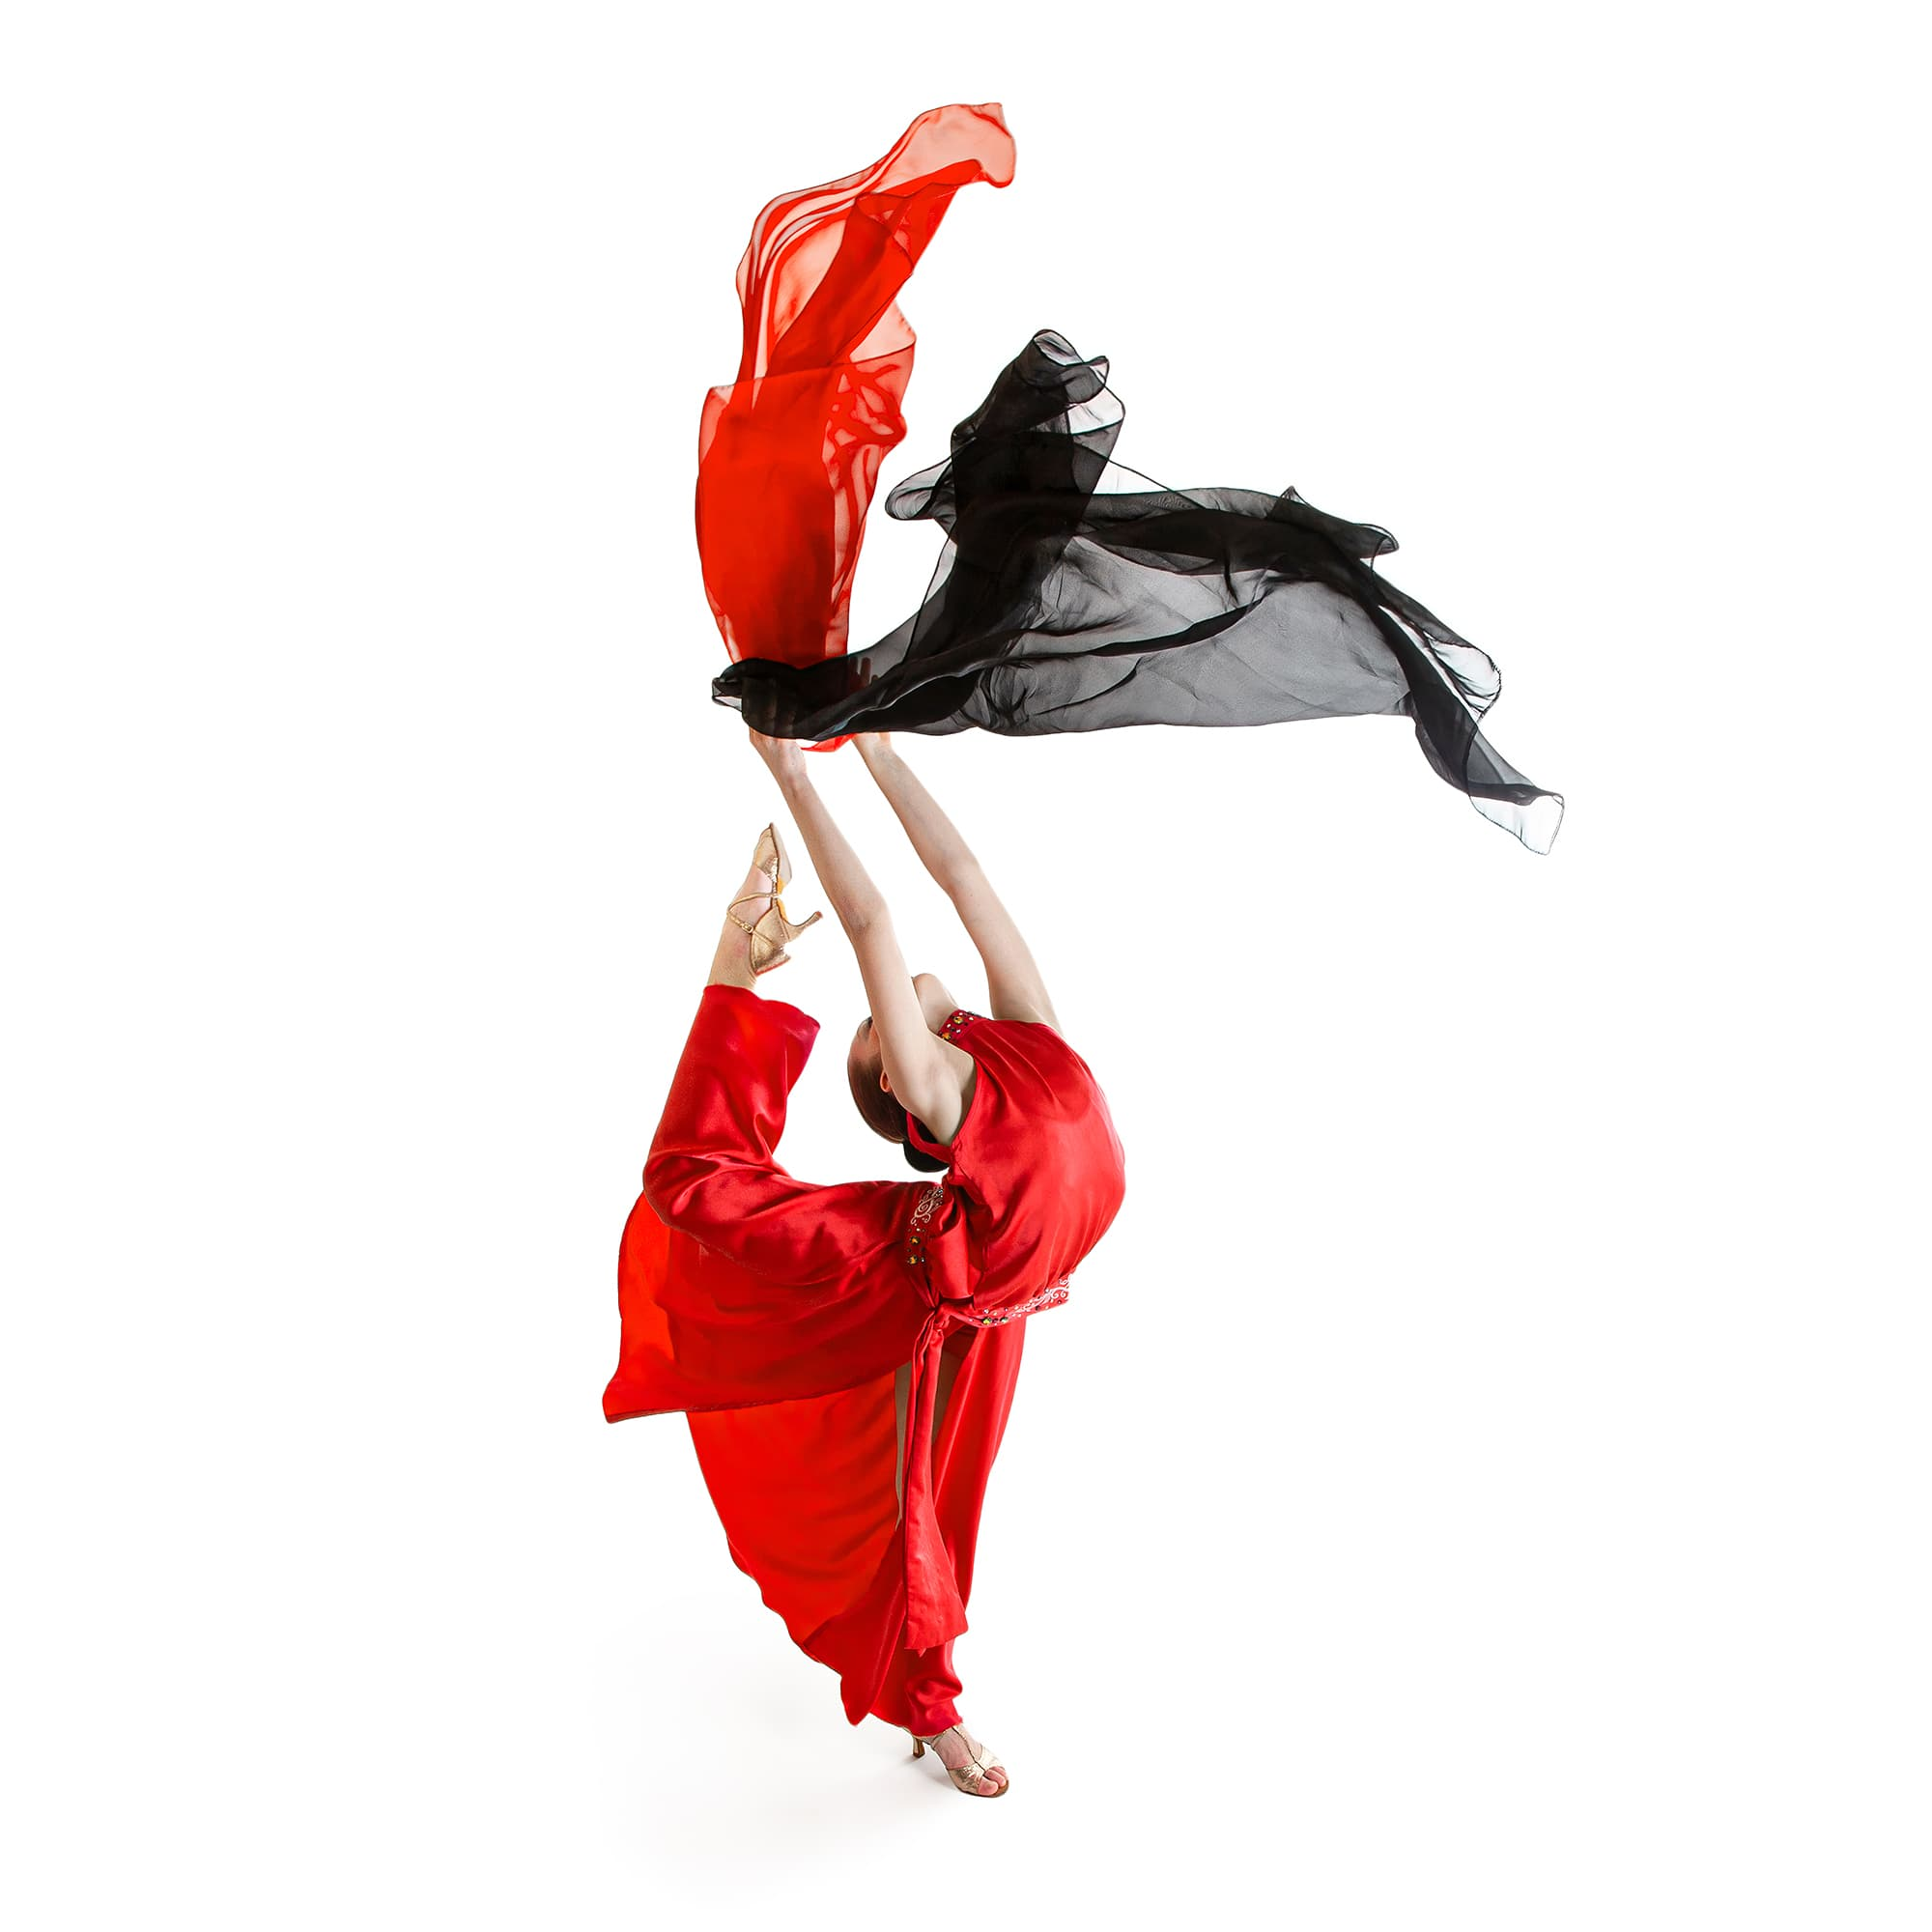 Amazing dance costume № 101 made in red & black colours